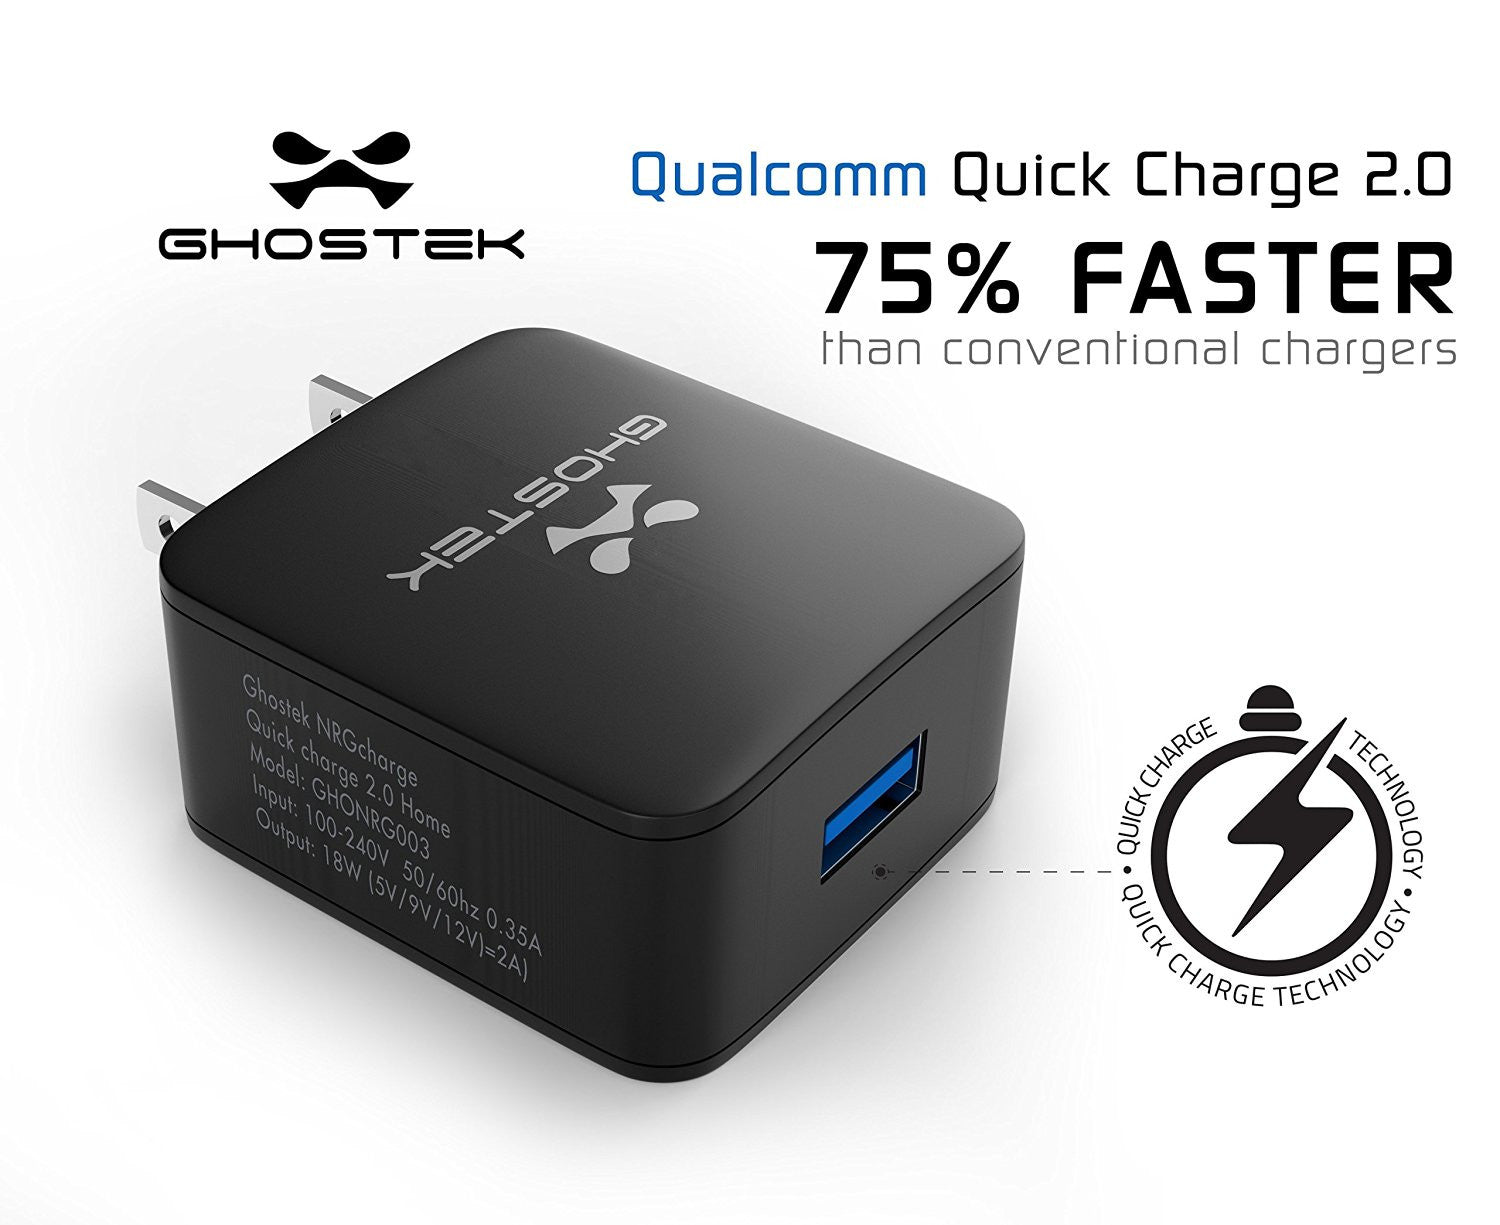 PunkCase NRGchargeQuickCharge 2.0 Rapid High-speed Fast Wall Home Black Charger w/ Micro USB Cable